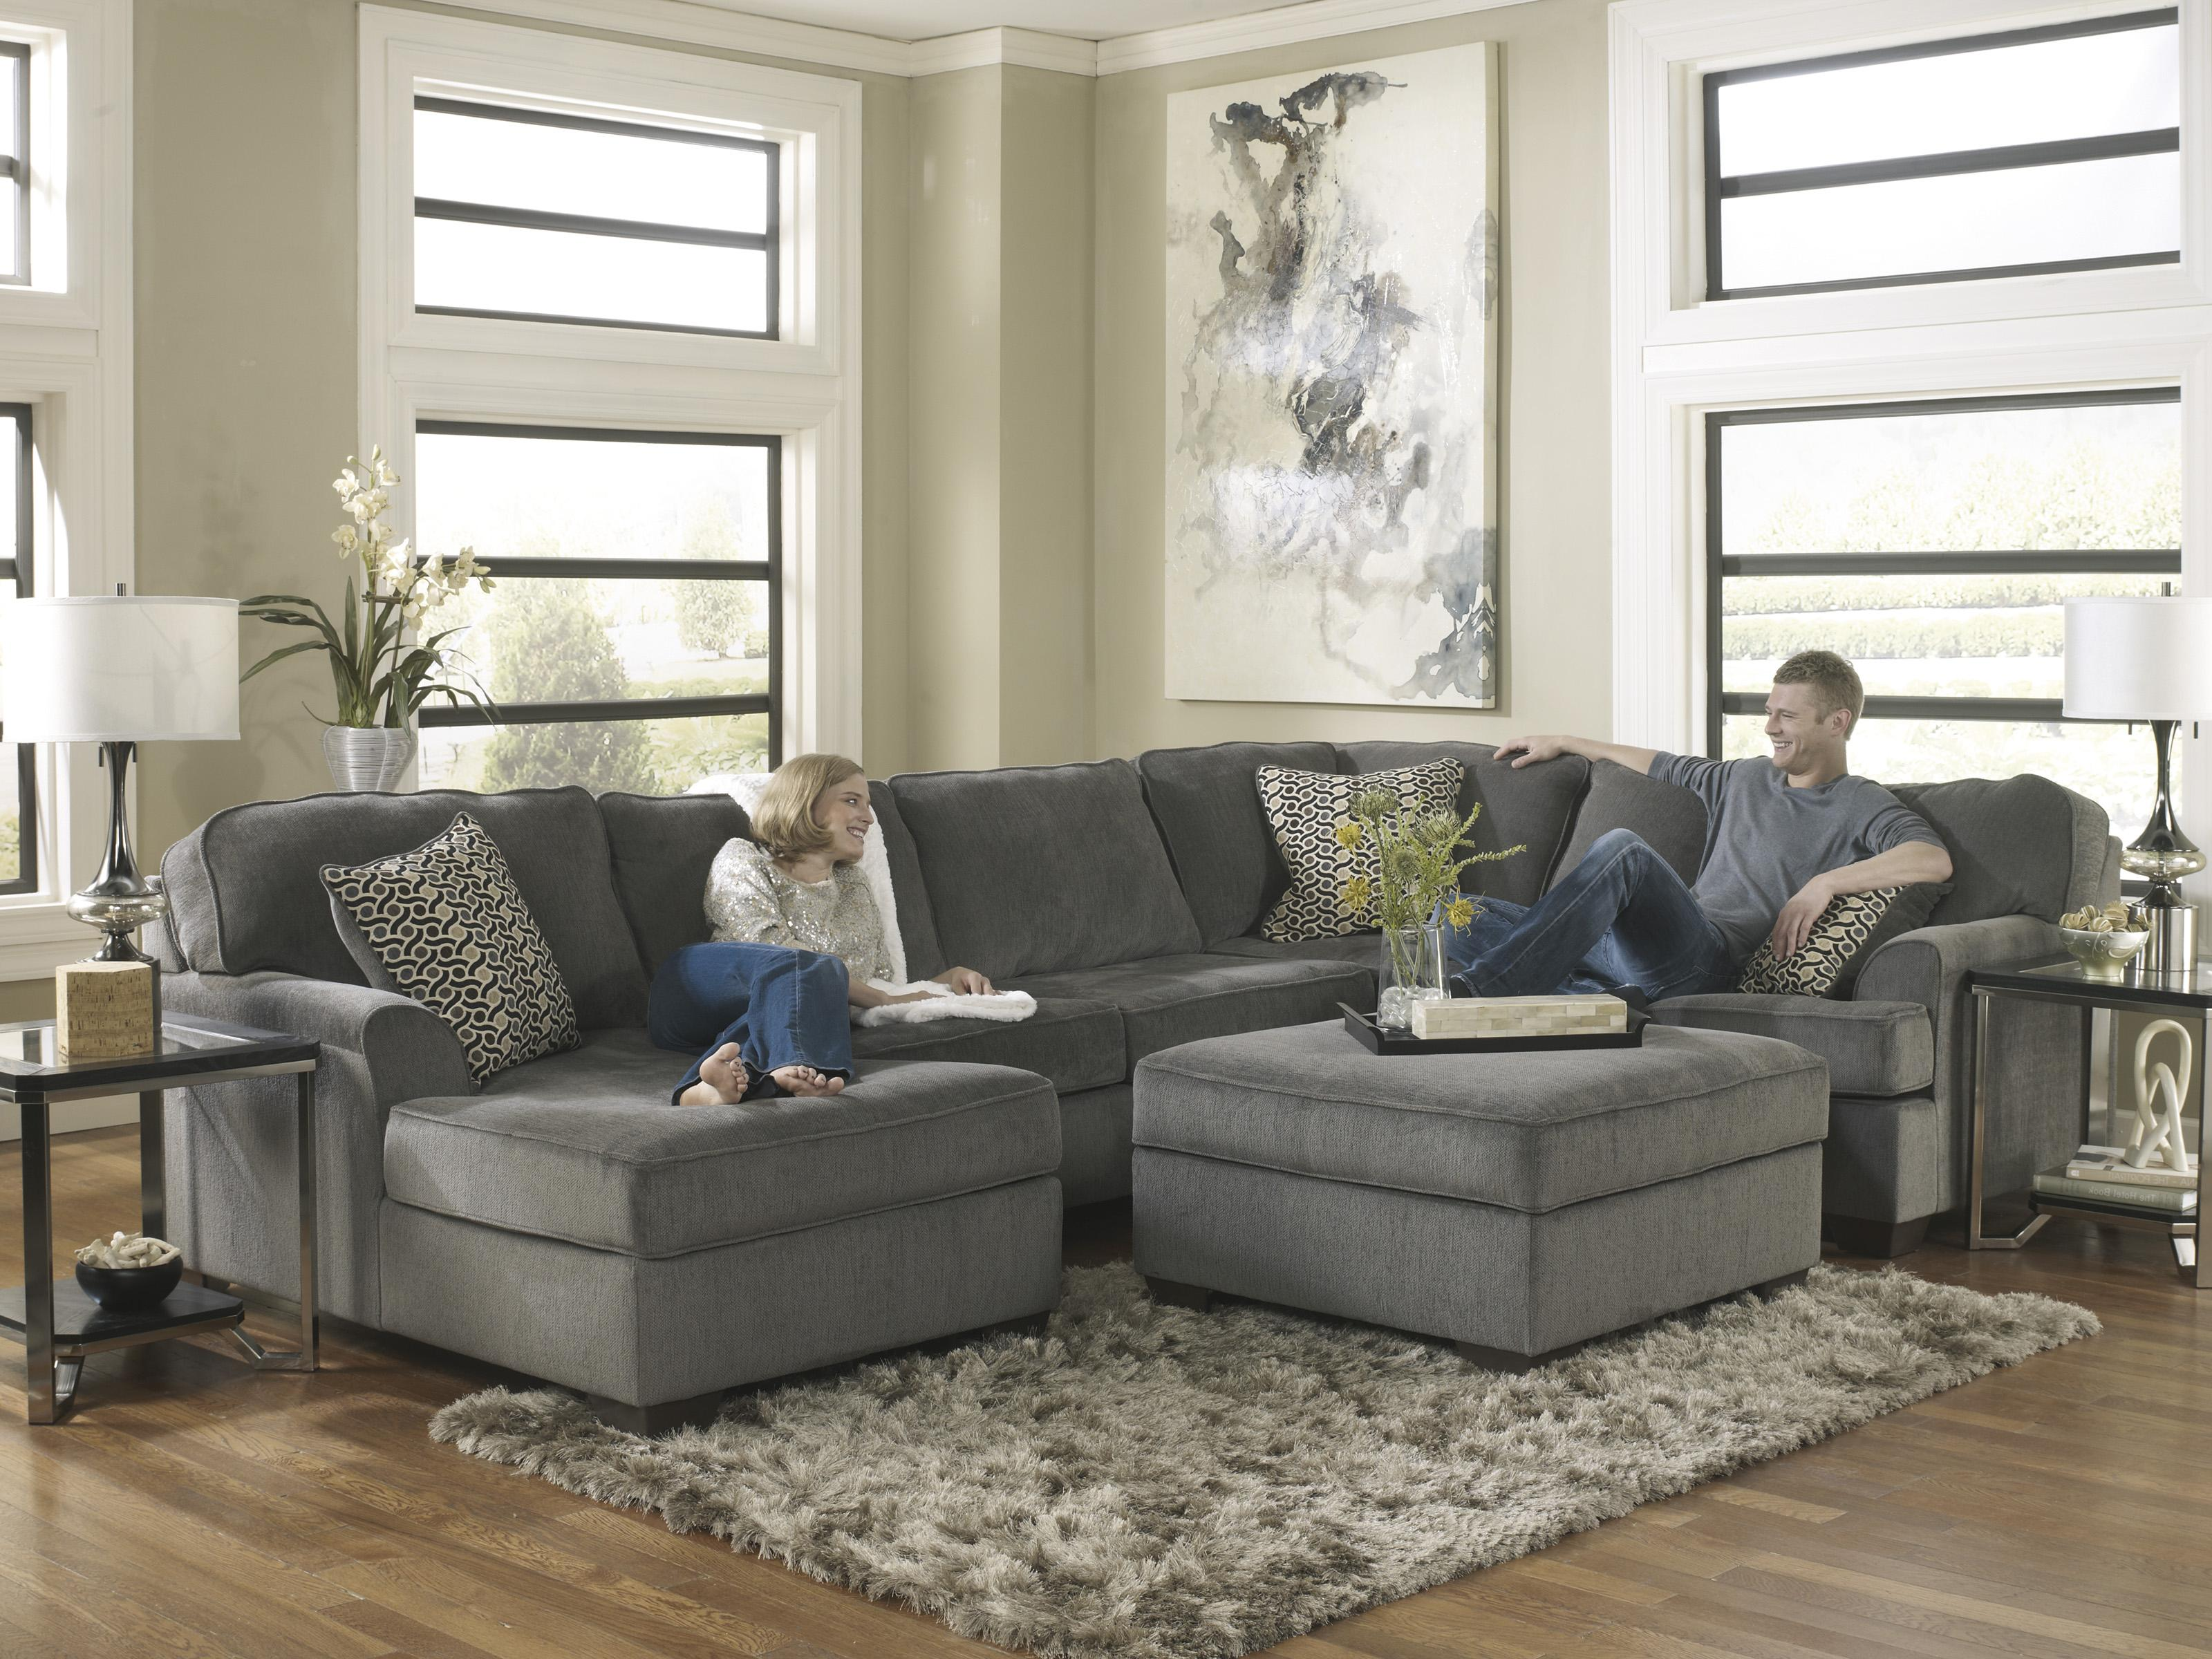 Ashley furniture loric smoke contemporary 3 piece for 3 piece chaise sectional